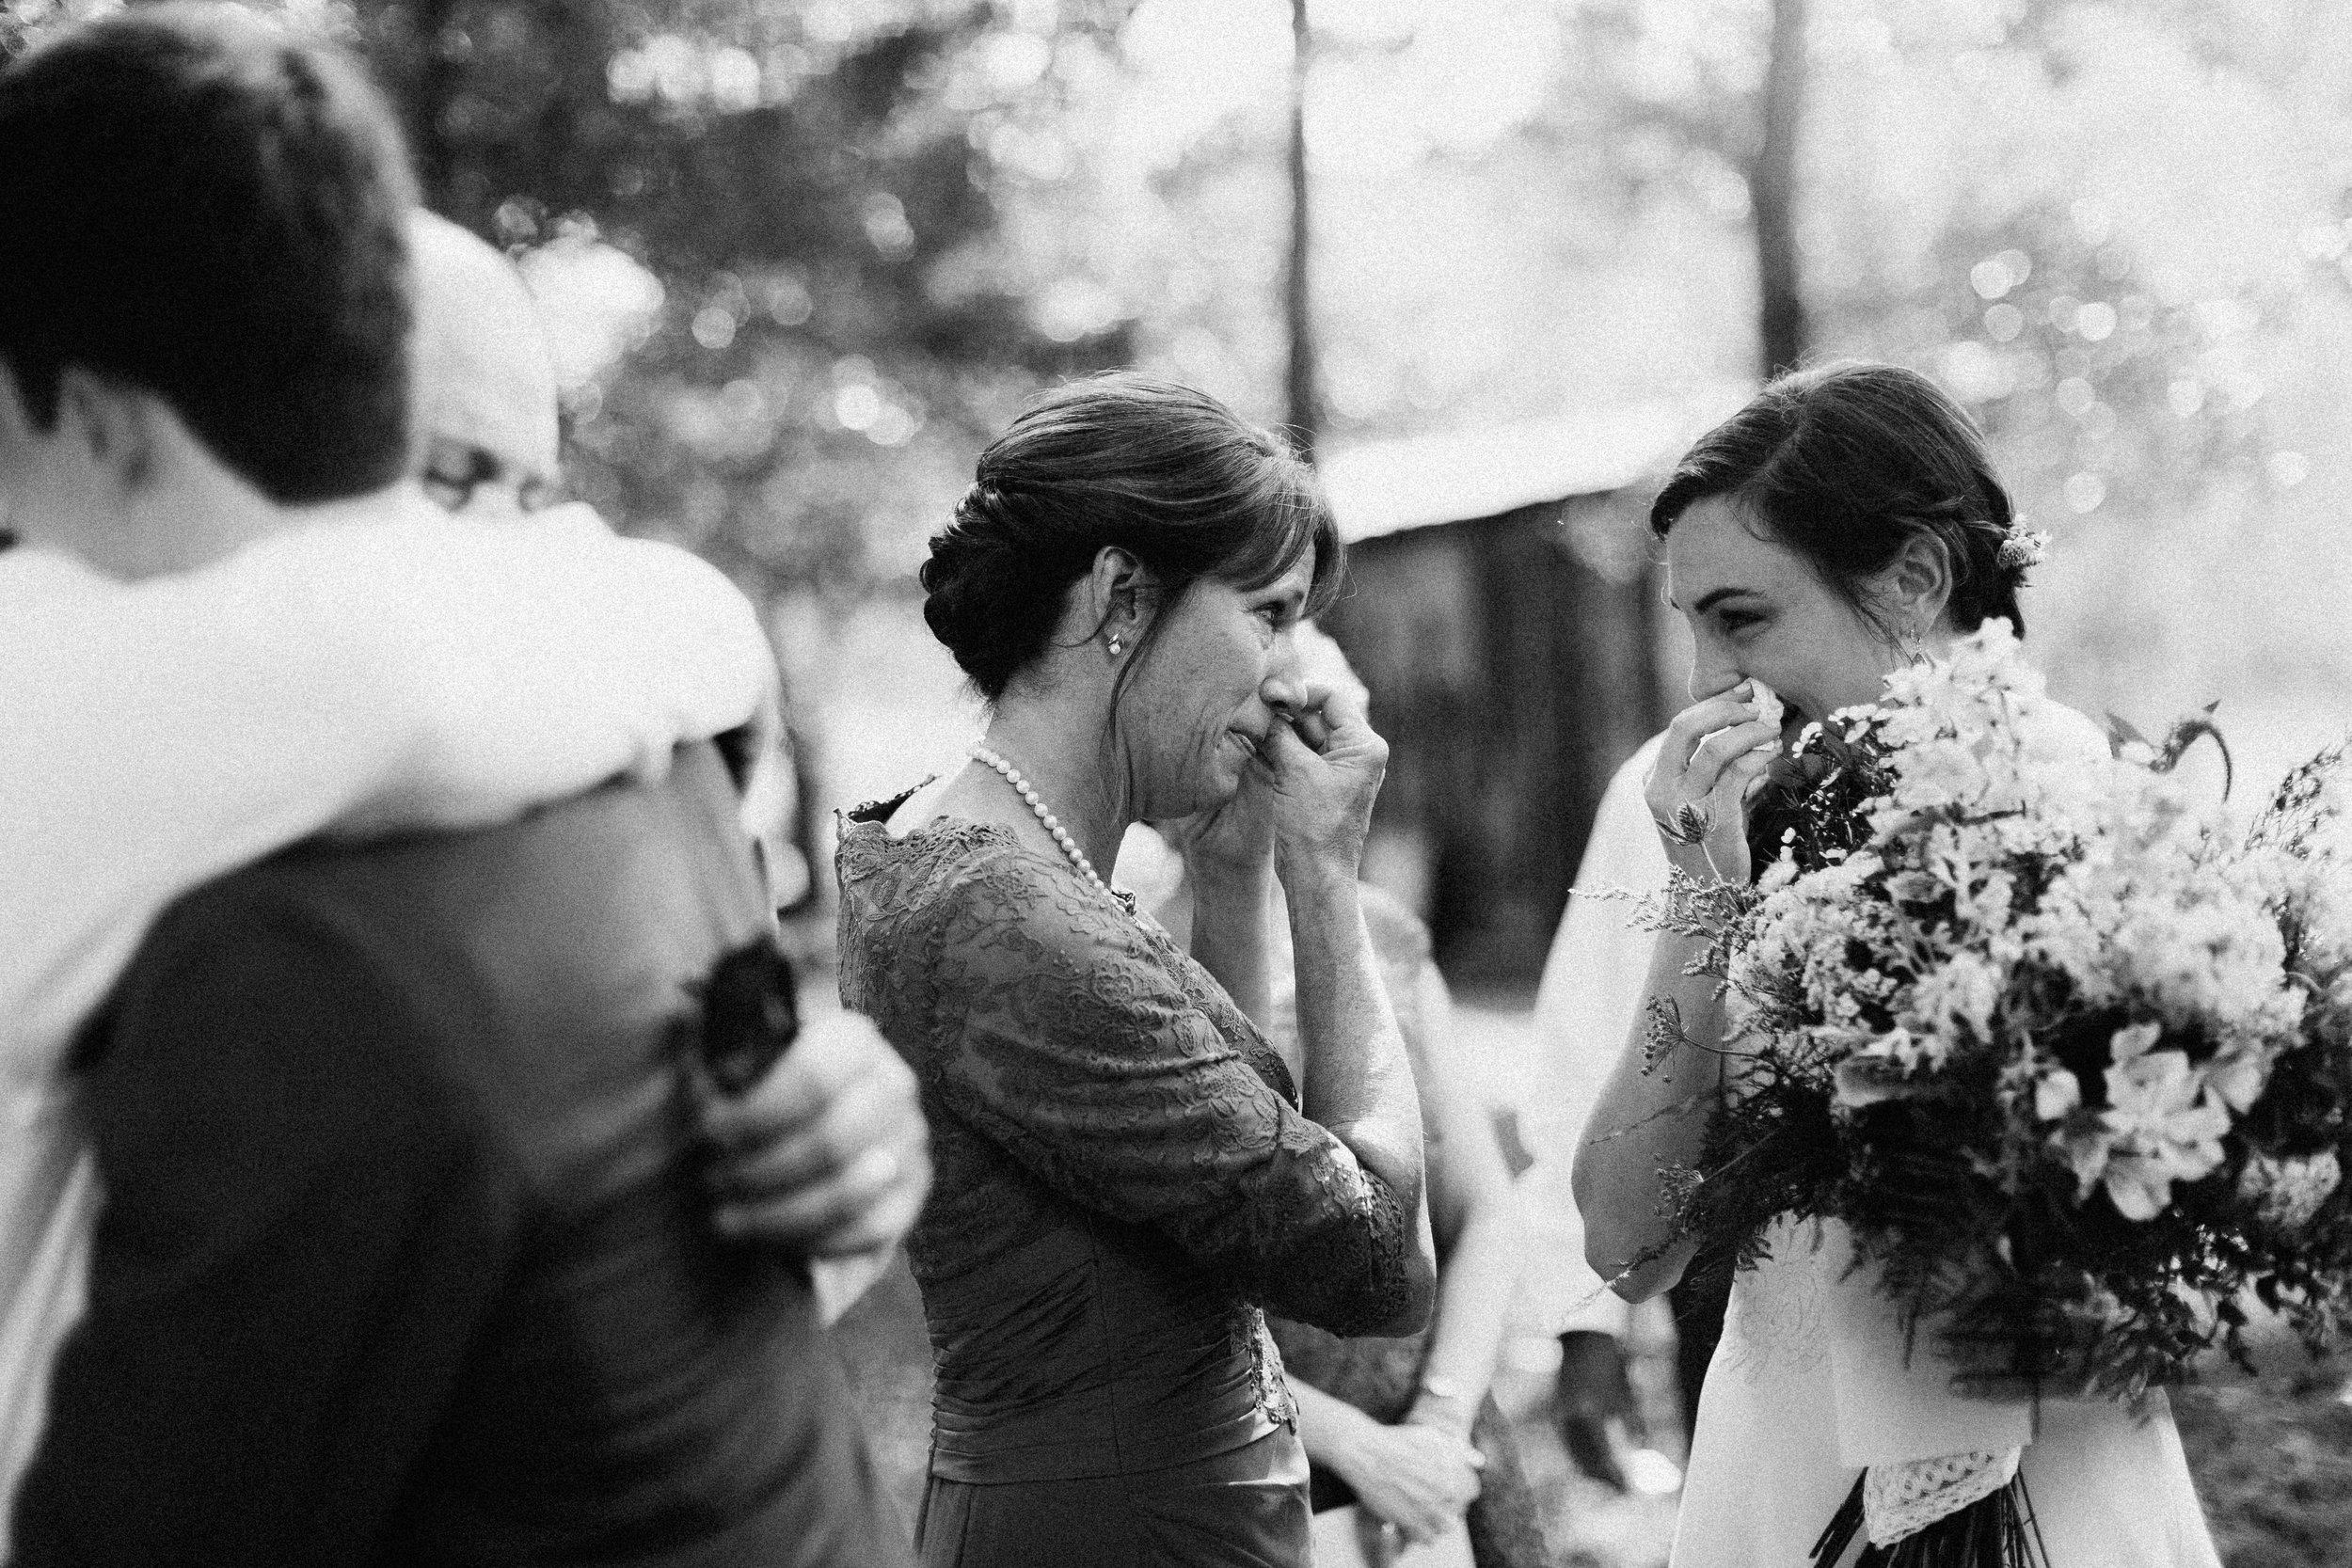 cleveland_georgia_mountain_laurel_farm_natural_classic_timeless_documentary_candid_wedding_emotional_photojournalism_river_west_1276.jpg